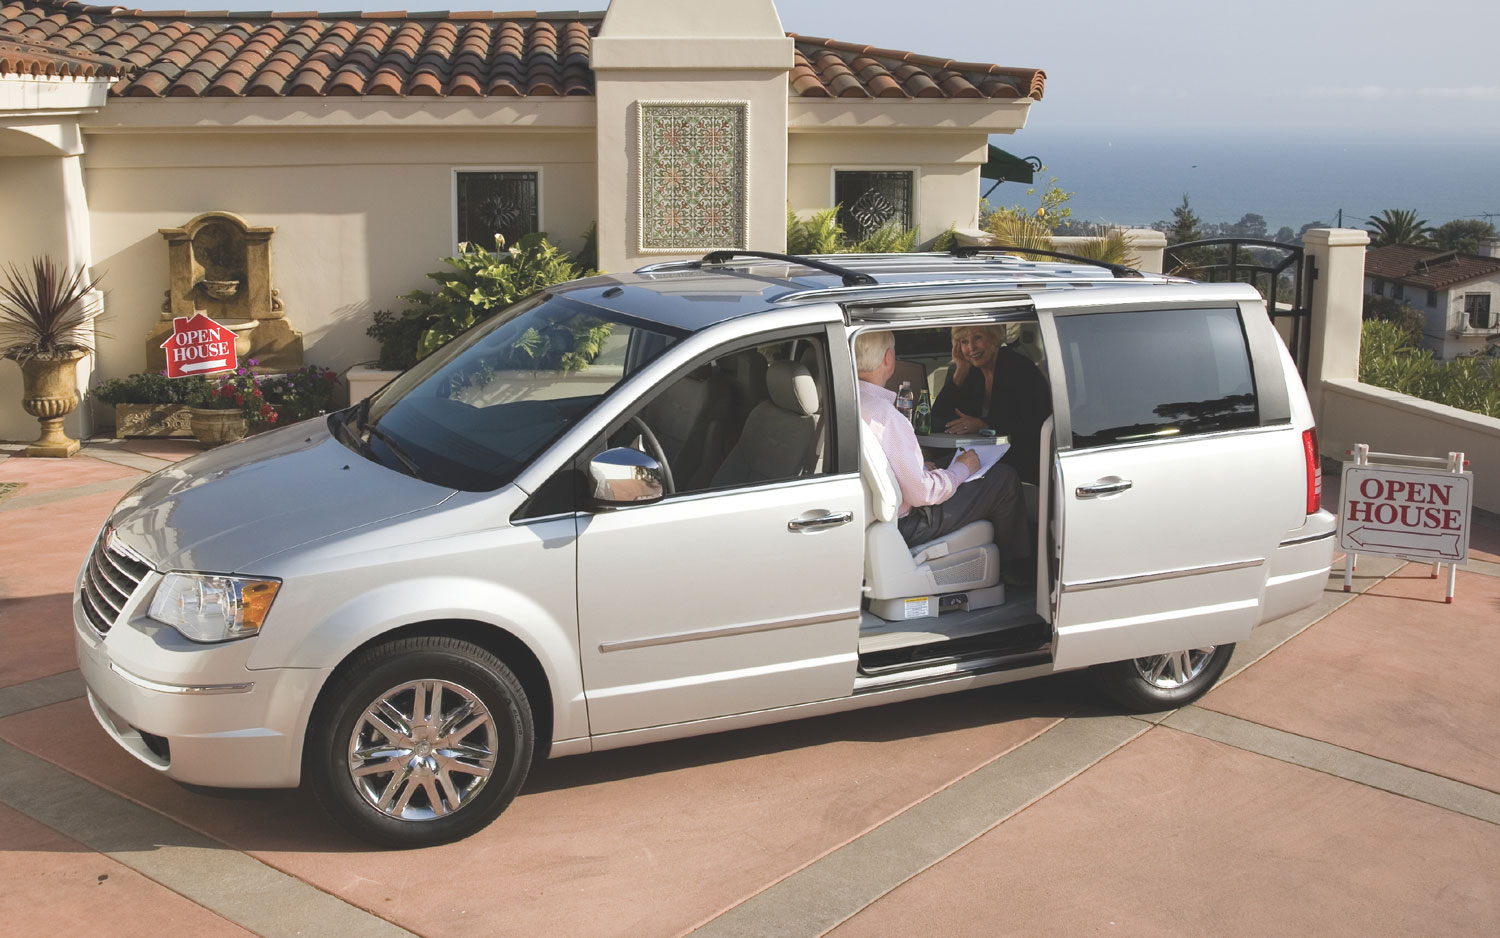 2008 Chrysler Town & Country, Dodge Grand Caravan Recalled